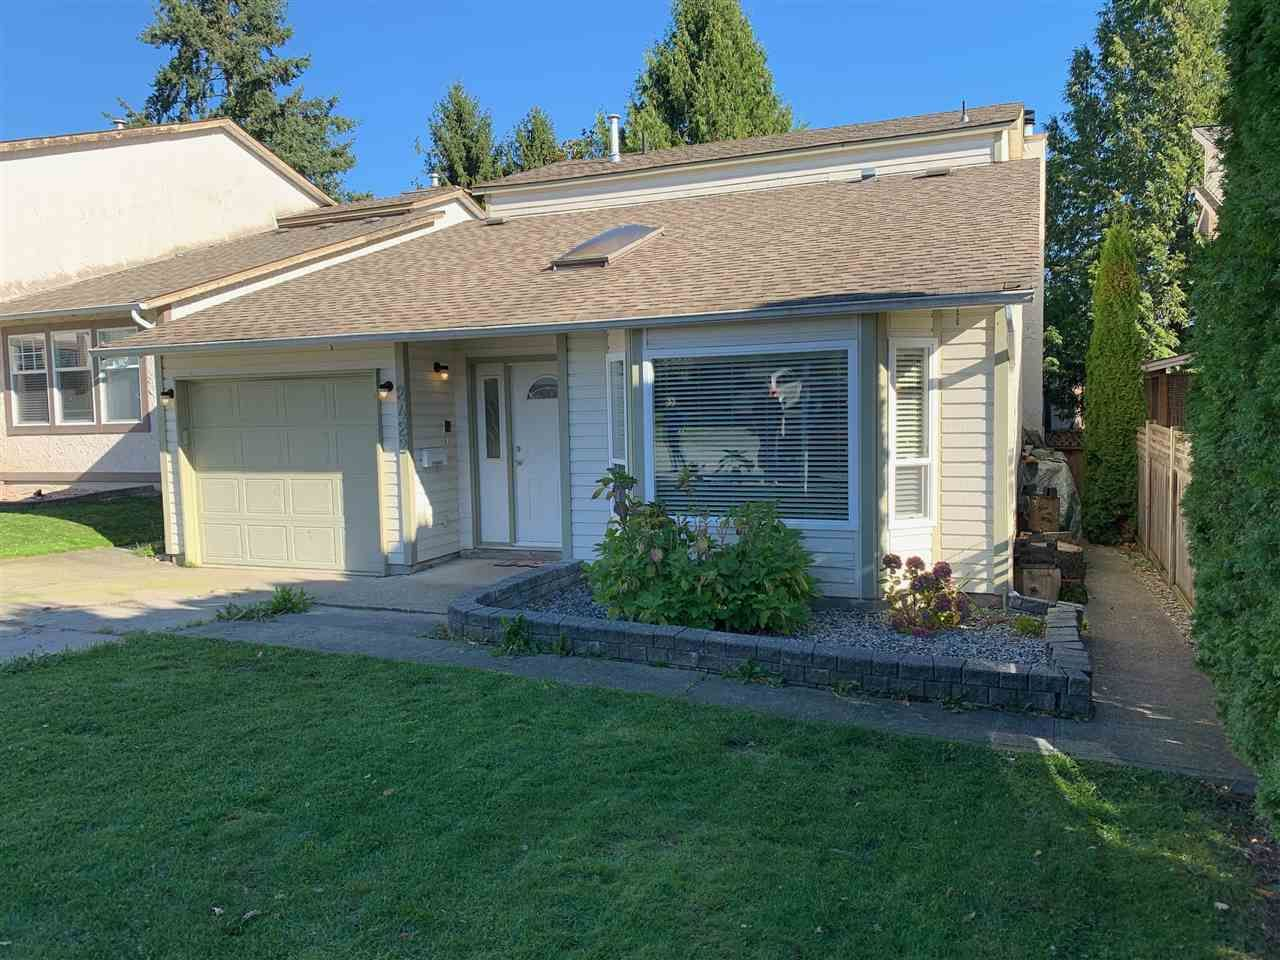 Main Photo: 2422 WAYBURNE Crescent in Langley: Willoughby Heights House for sale : MLS®# R2414956